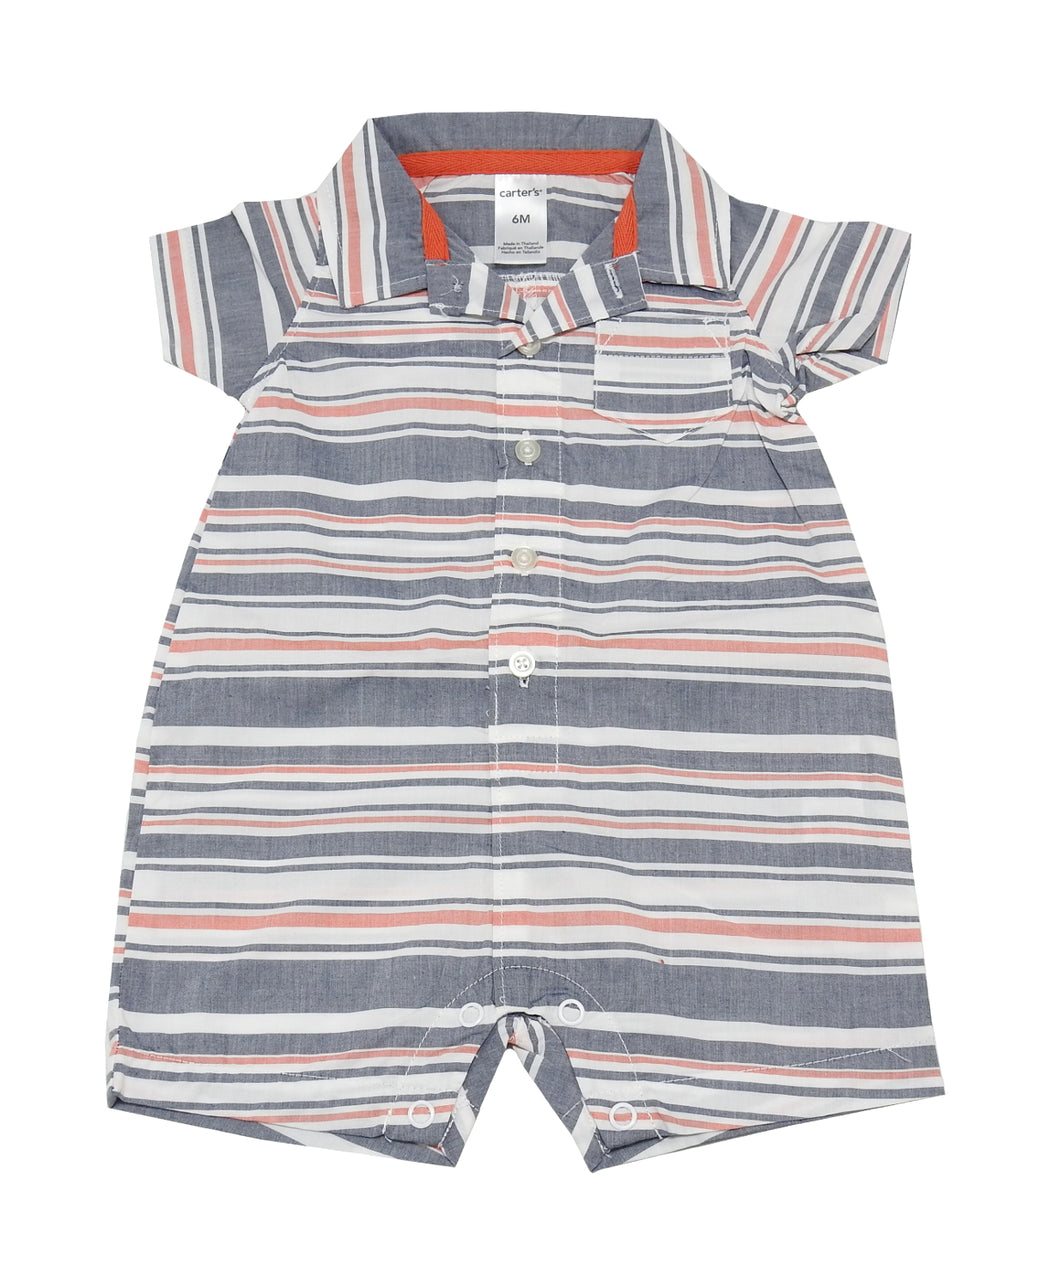 Carter's Baby Boy Size 6 Months Striped Short Sleeve Romper, Multi-Colored